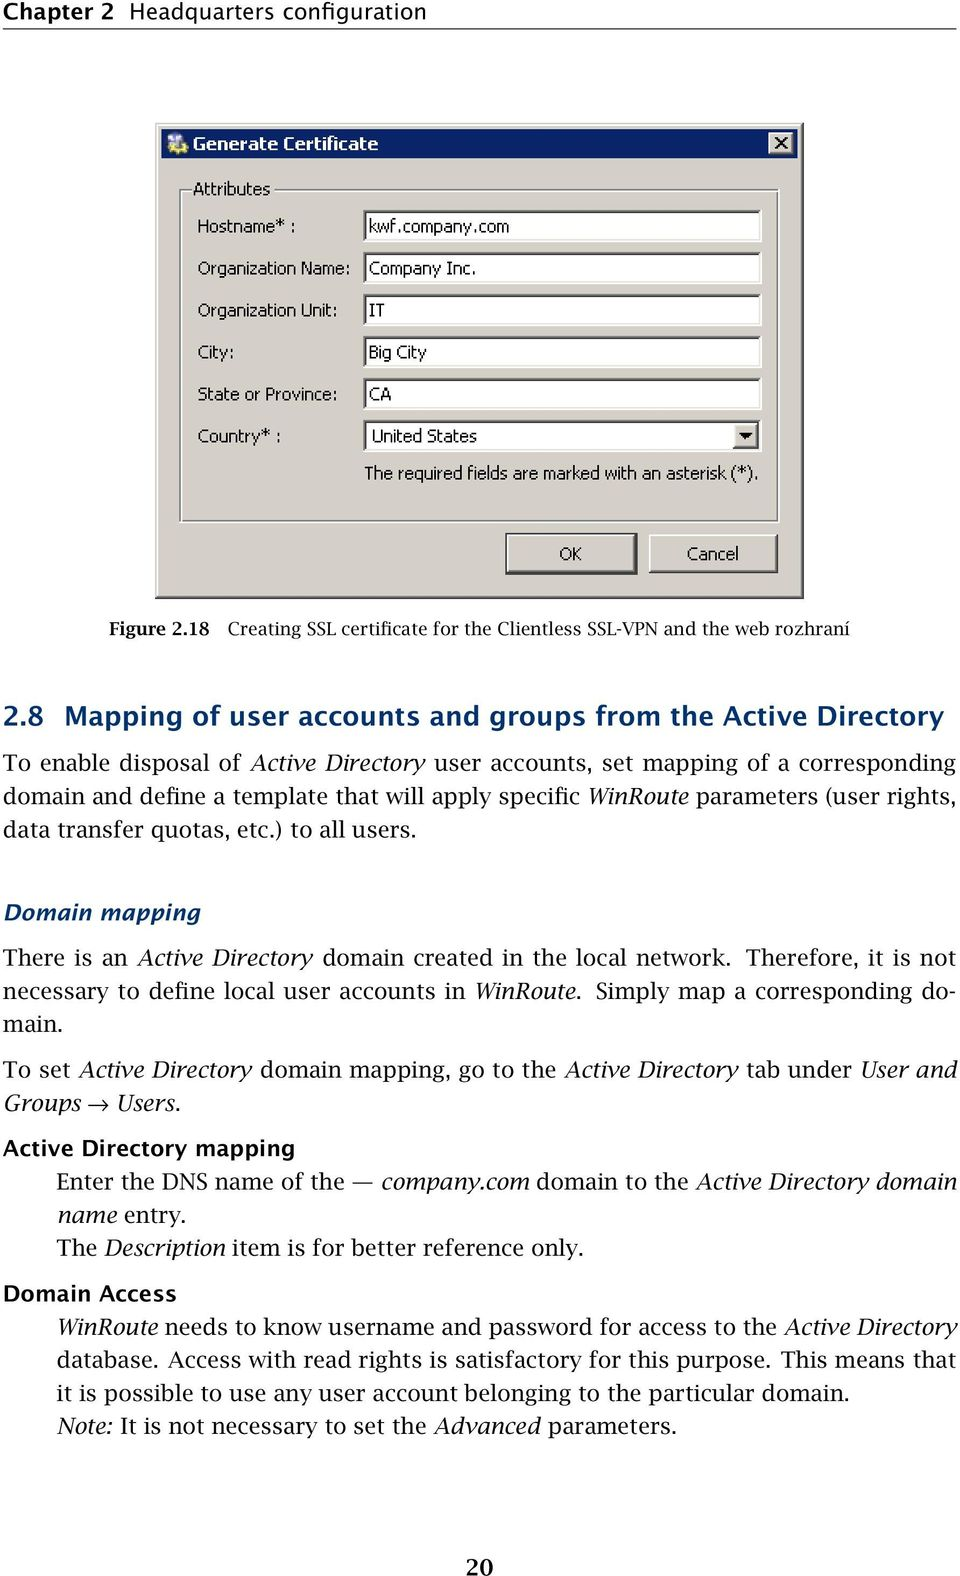 specific WinRoute parameters (user rights, data transfer quotas, etc.) to all users. Domain mapping There is an Active Directory domain created in the local network.